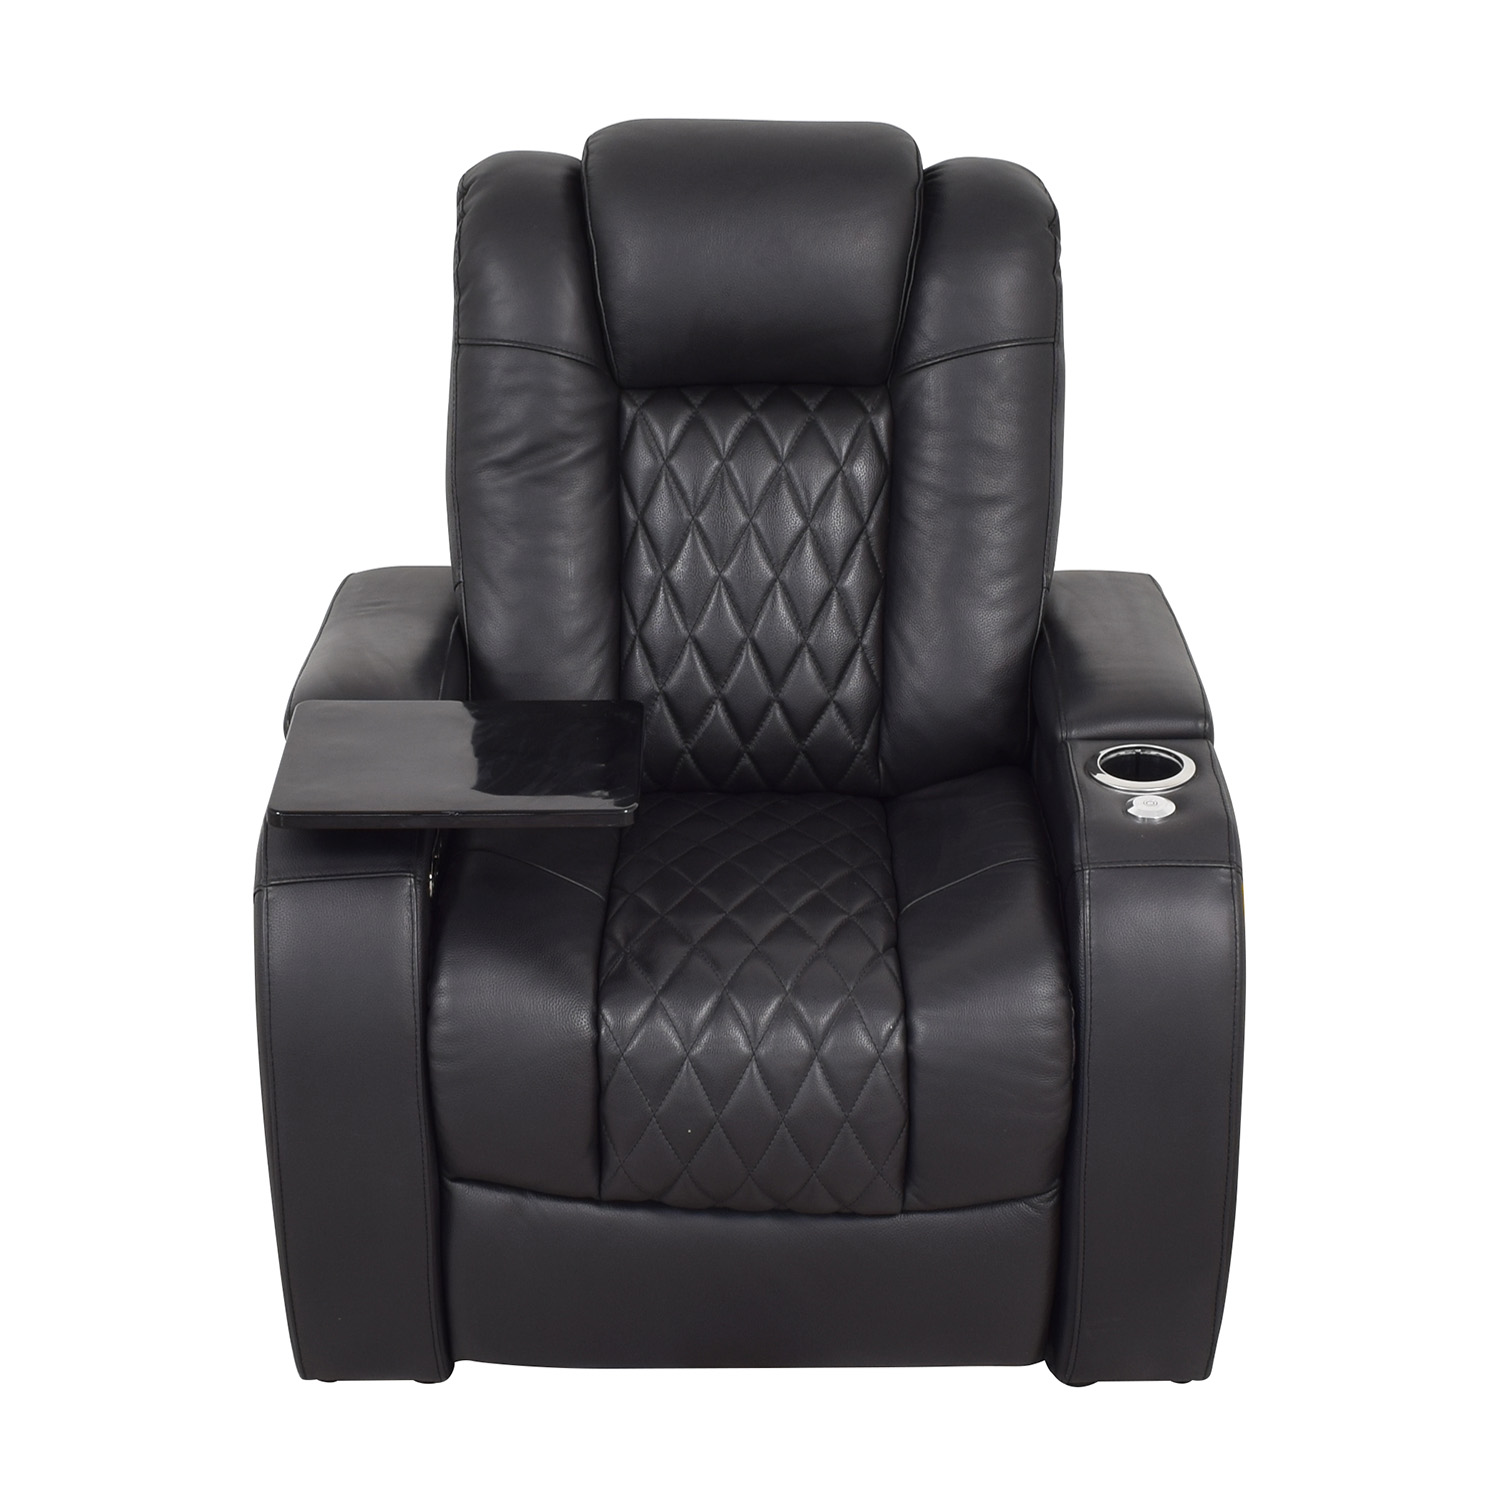 Seatcraft Diamante Home Theater Seating Leather Power Recliner / Recliners